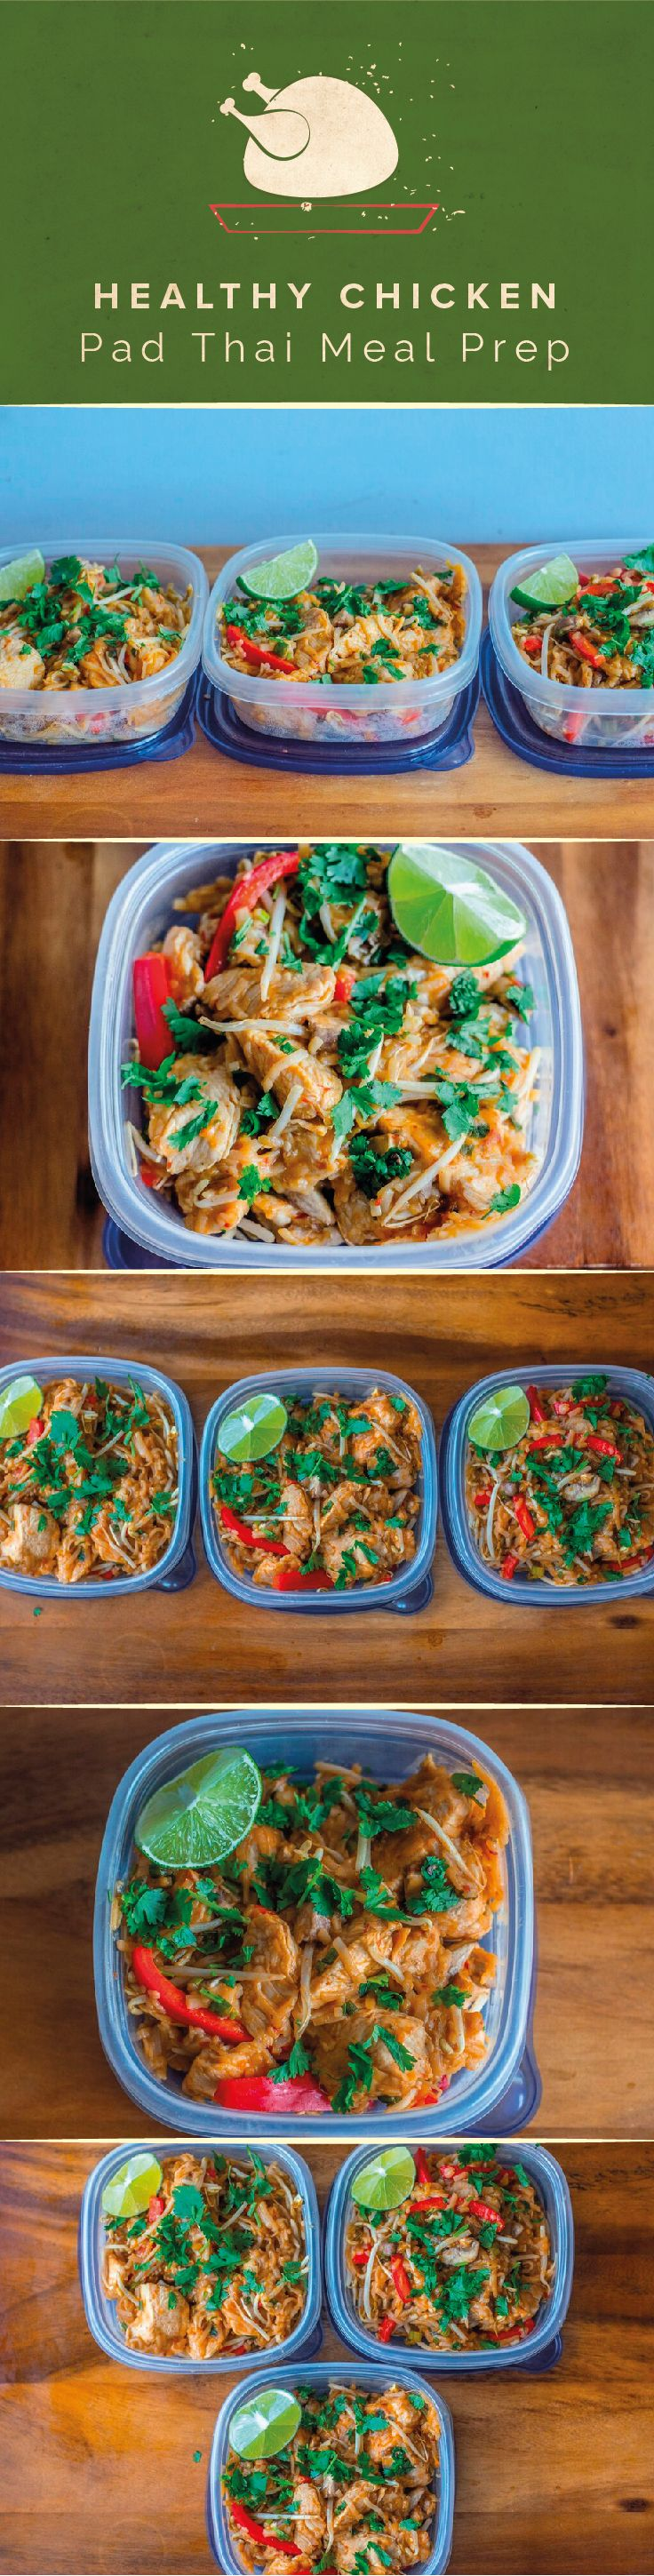 Chicken Pad Thai Meal Prep